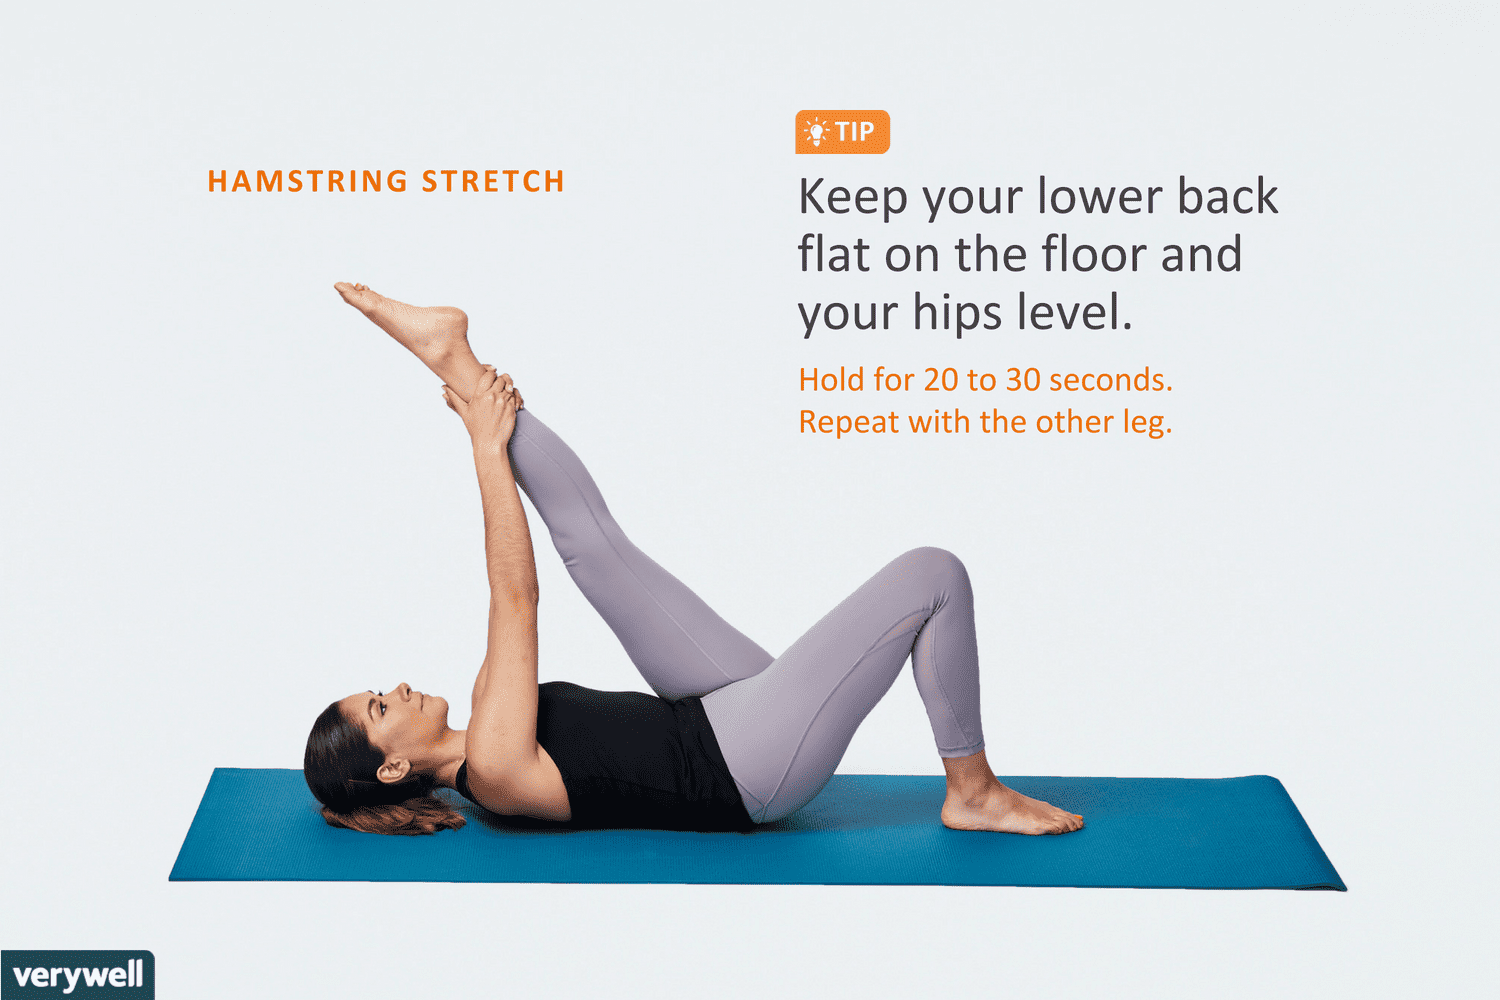 hight resolution of woman doing hamstring stretch lying down